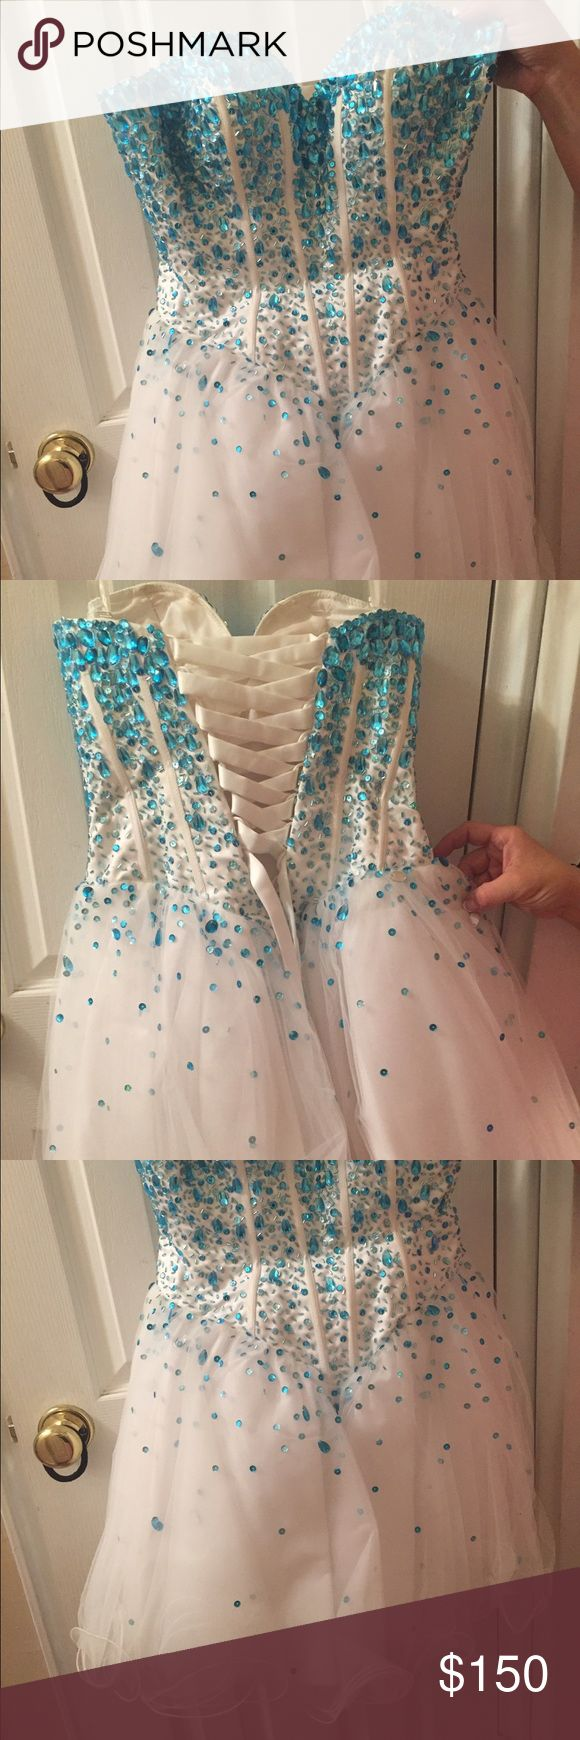 Mori Lee dress Short, fit and flare, corset back. Worn for 3 hours, very good condition. Beautiful turquoise beading Mori Lee Dresses Prom